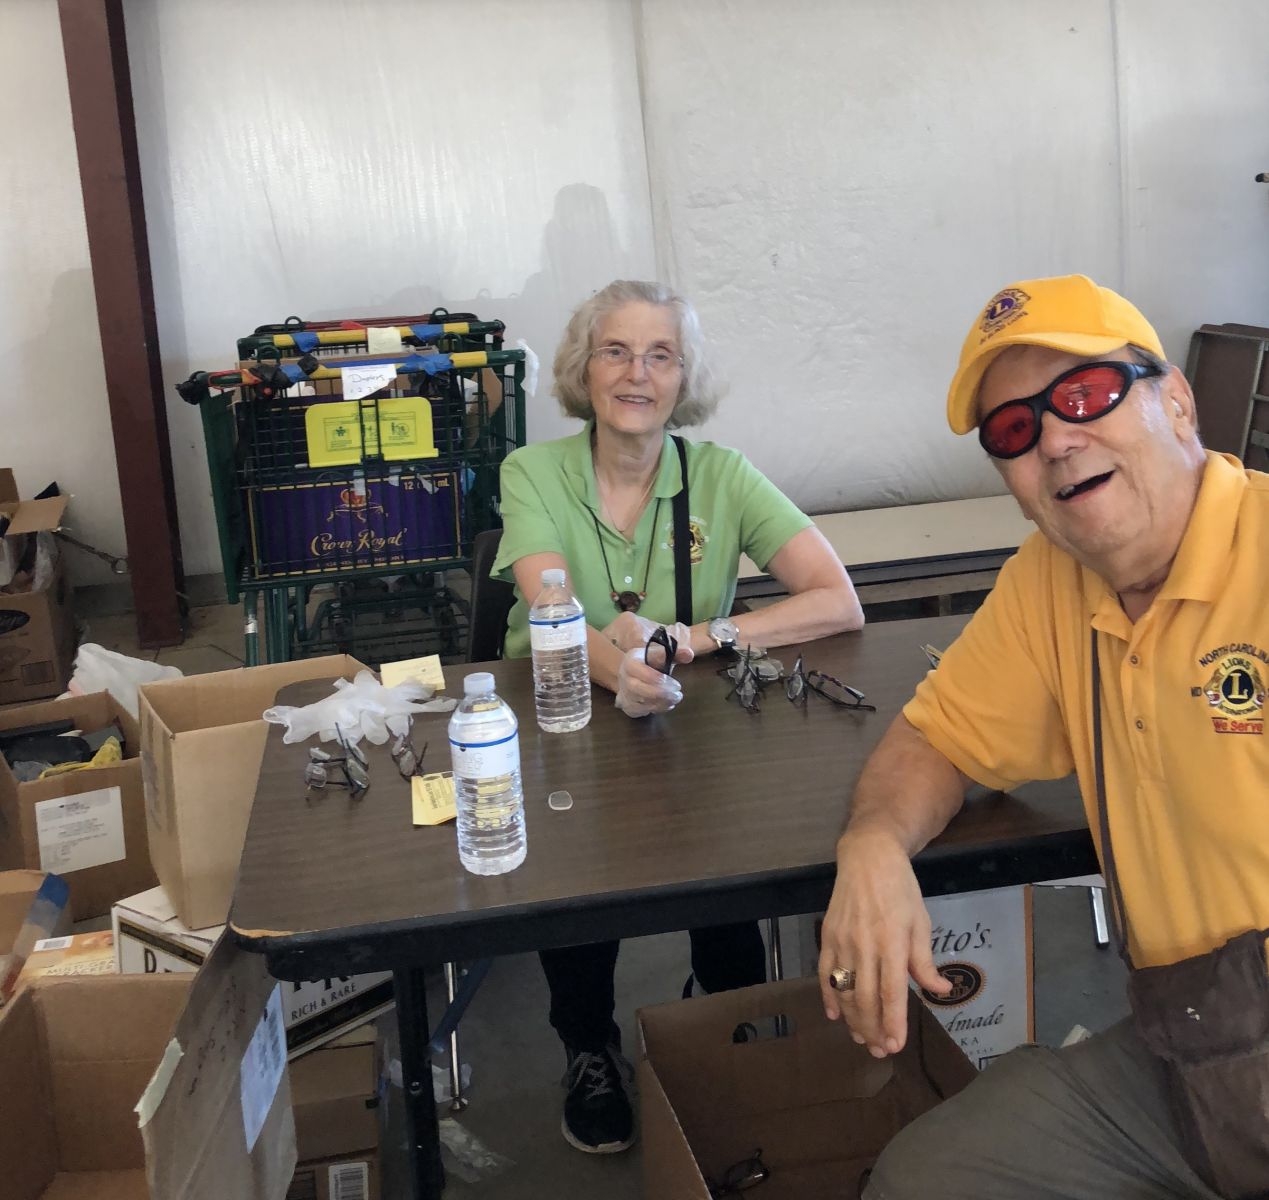 North Raleigh Lions Dale & Bill Graham working at the 2018 Camp Dogwood Eyeglasses Work Days